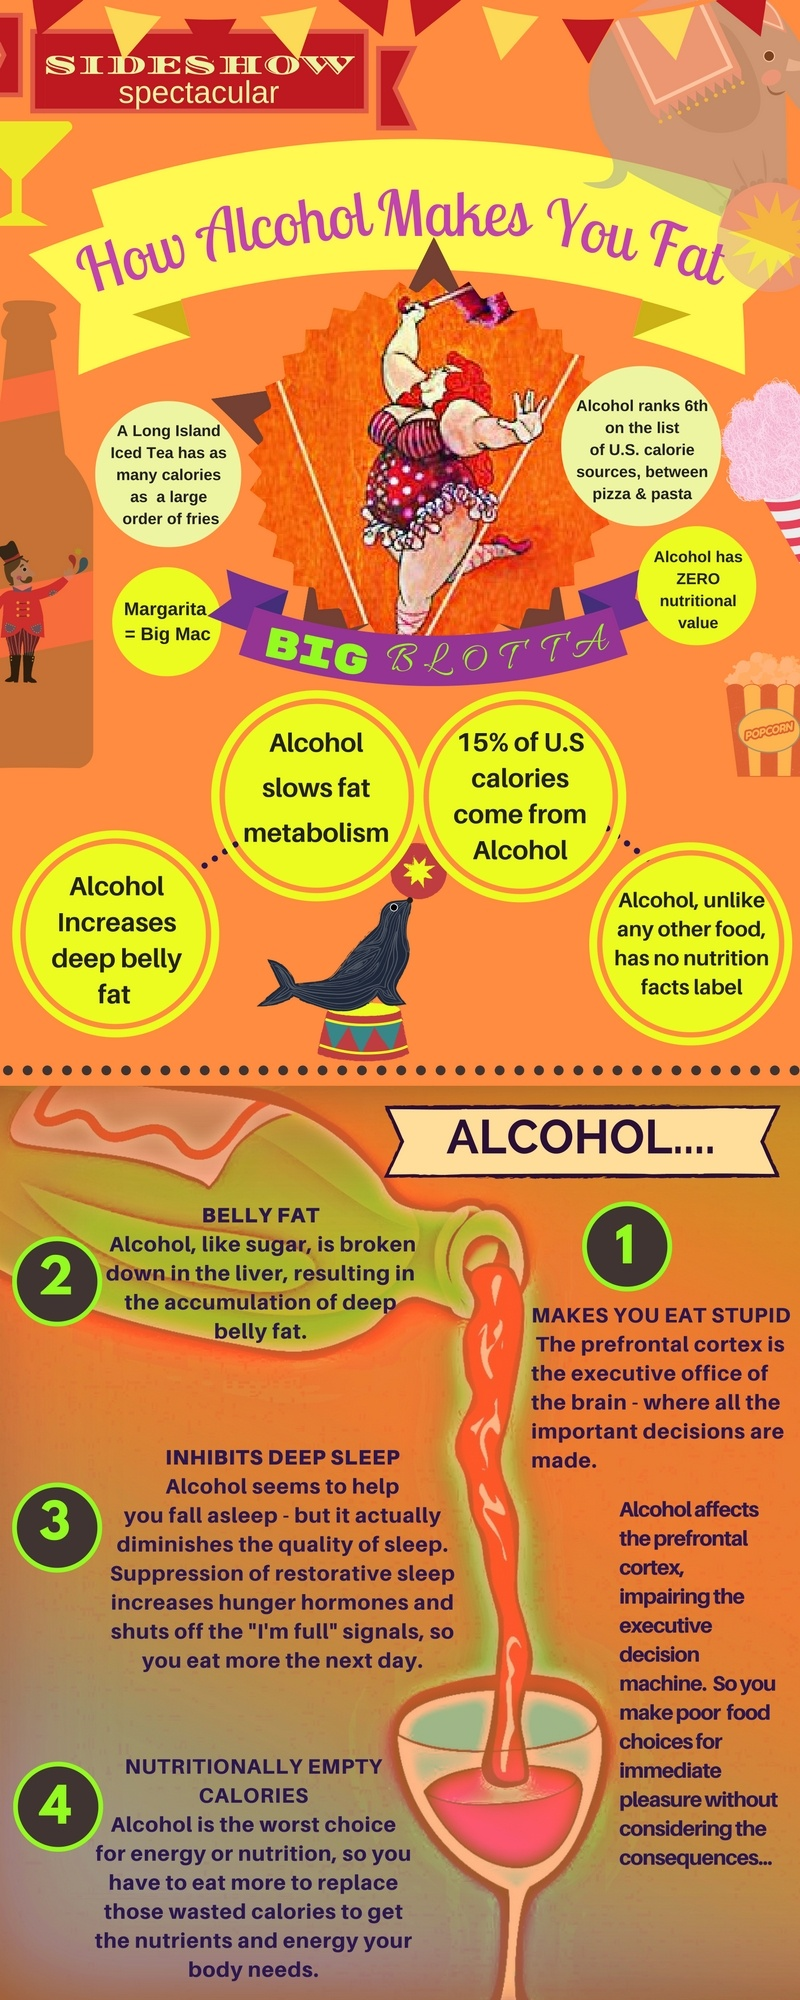 How alcohol makes you fat